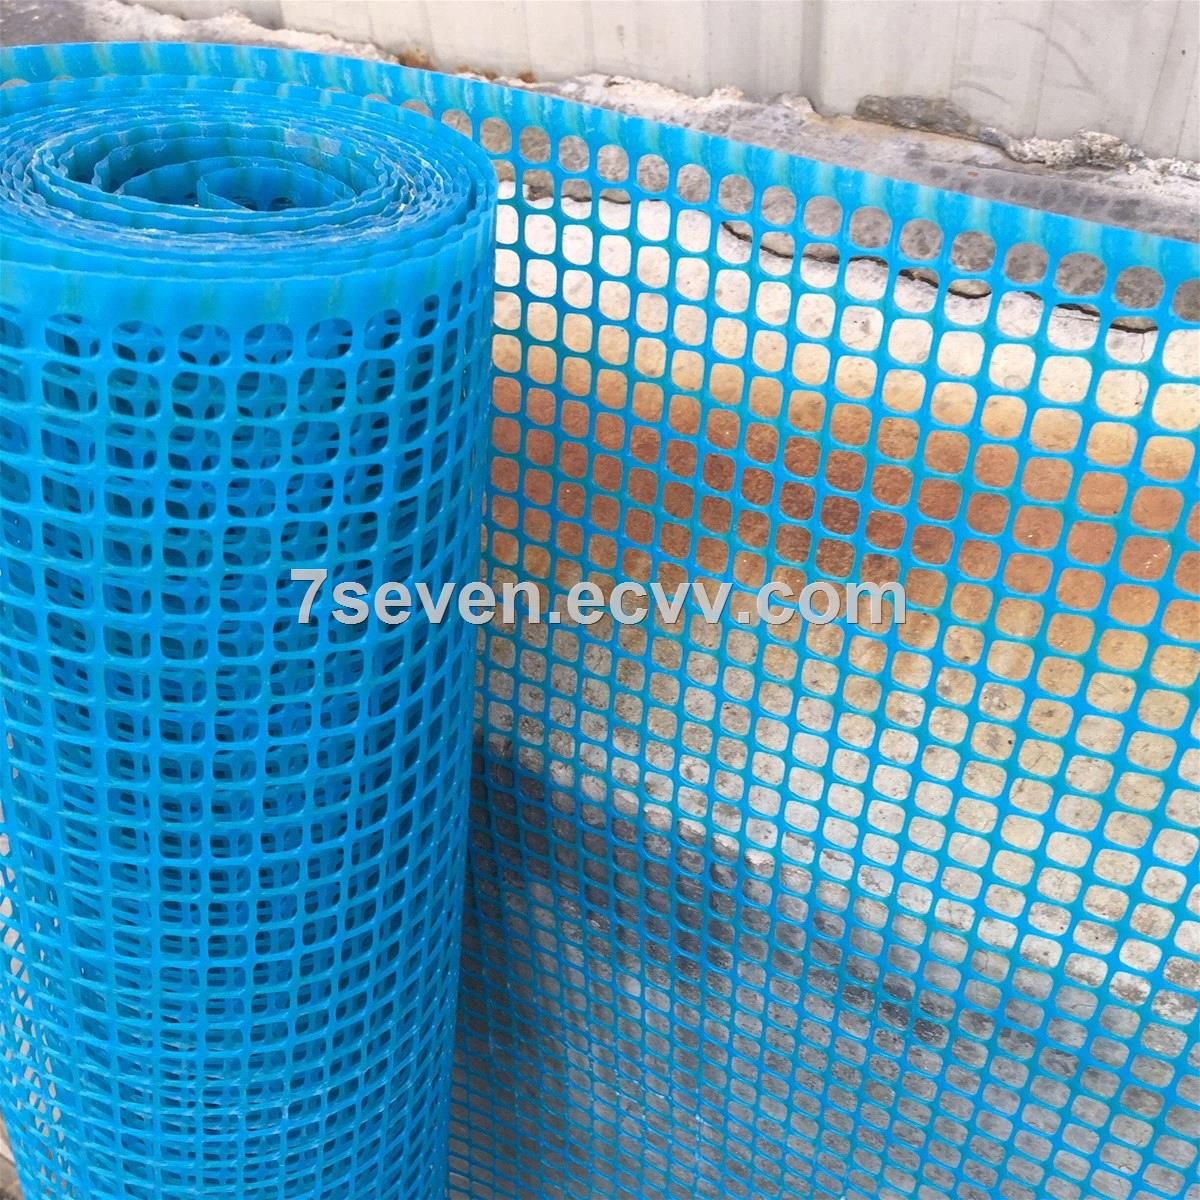 Factory Supply Garden Fence Plastic Mesh Netting High Quality Square Mesh Nets Ss198505 China Garden Fence Plastic M Plastic Mesh Mesh Fencing Mesh Netting